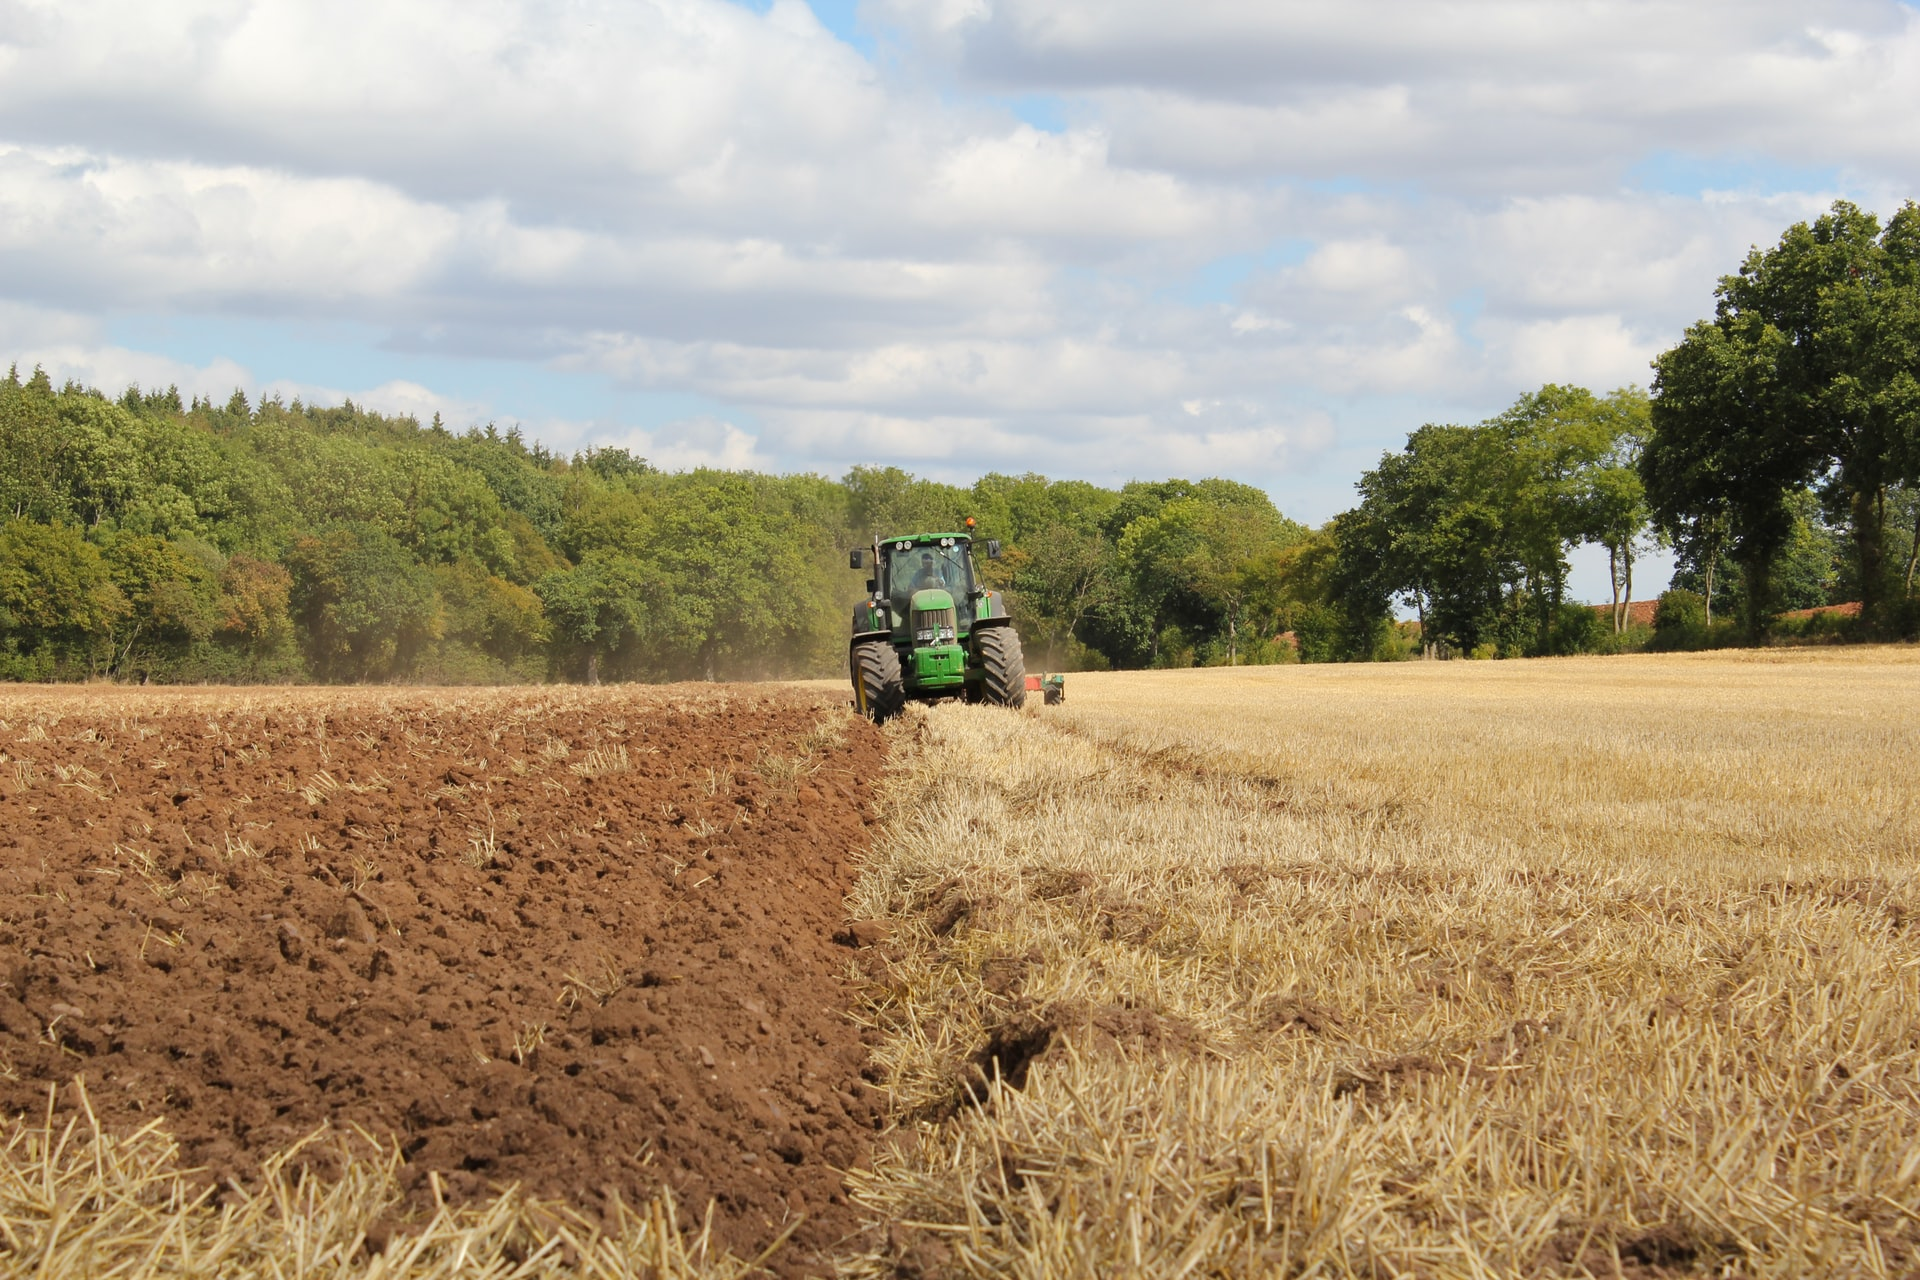 overtilling causes desertification